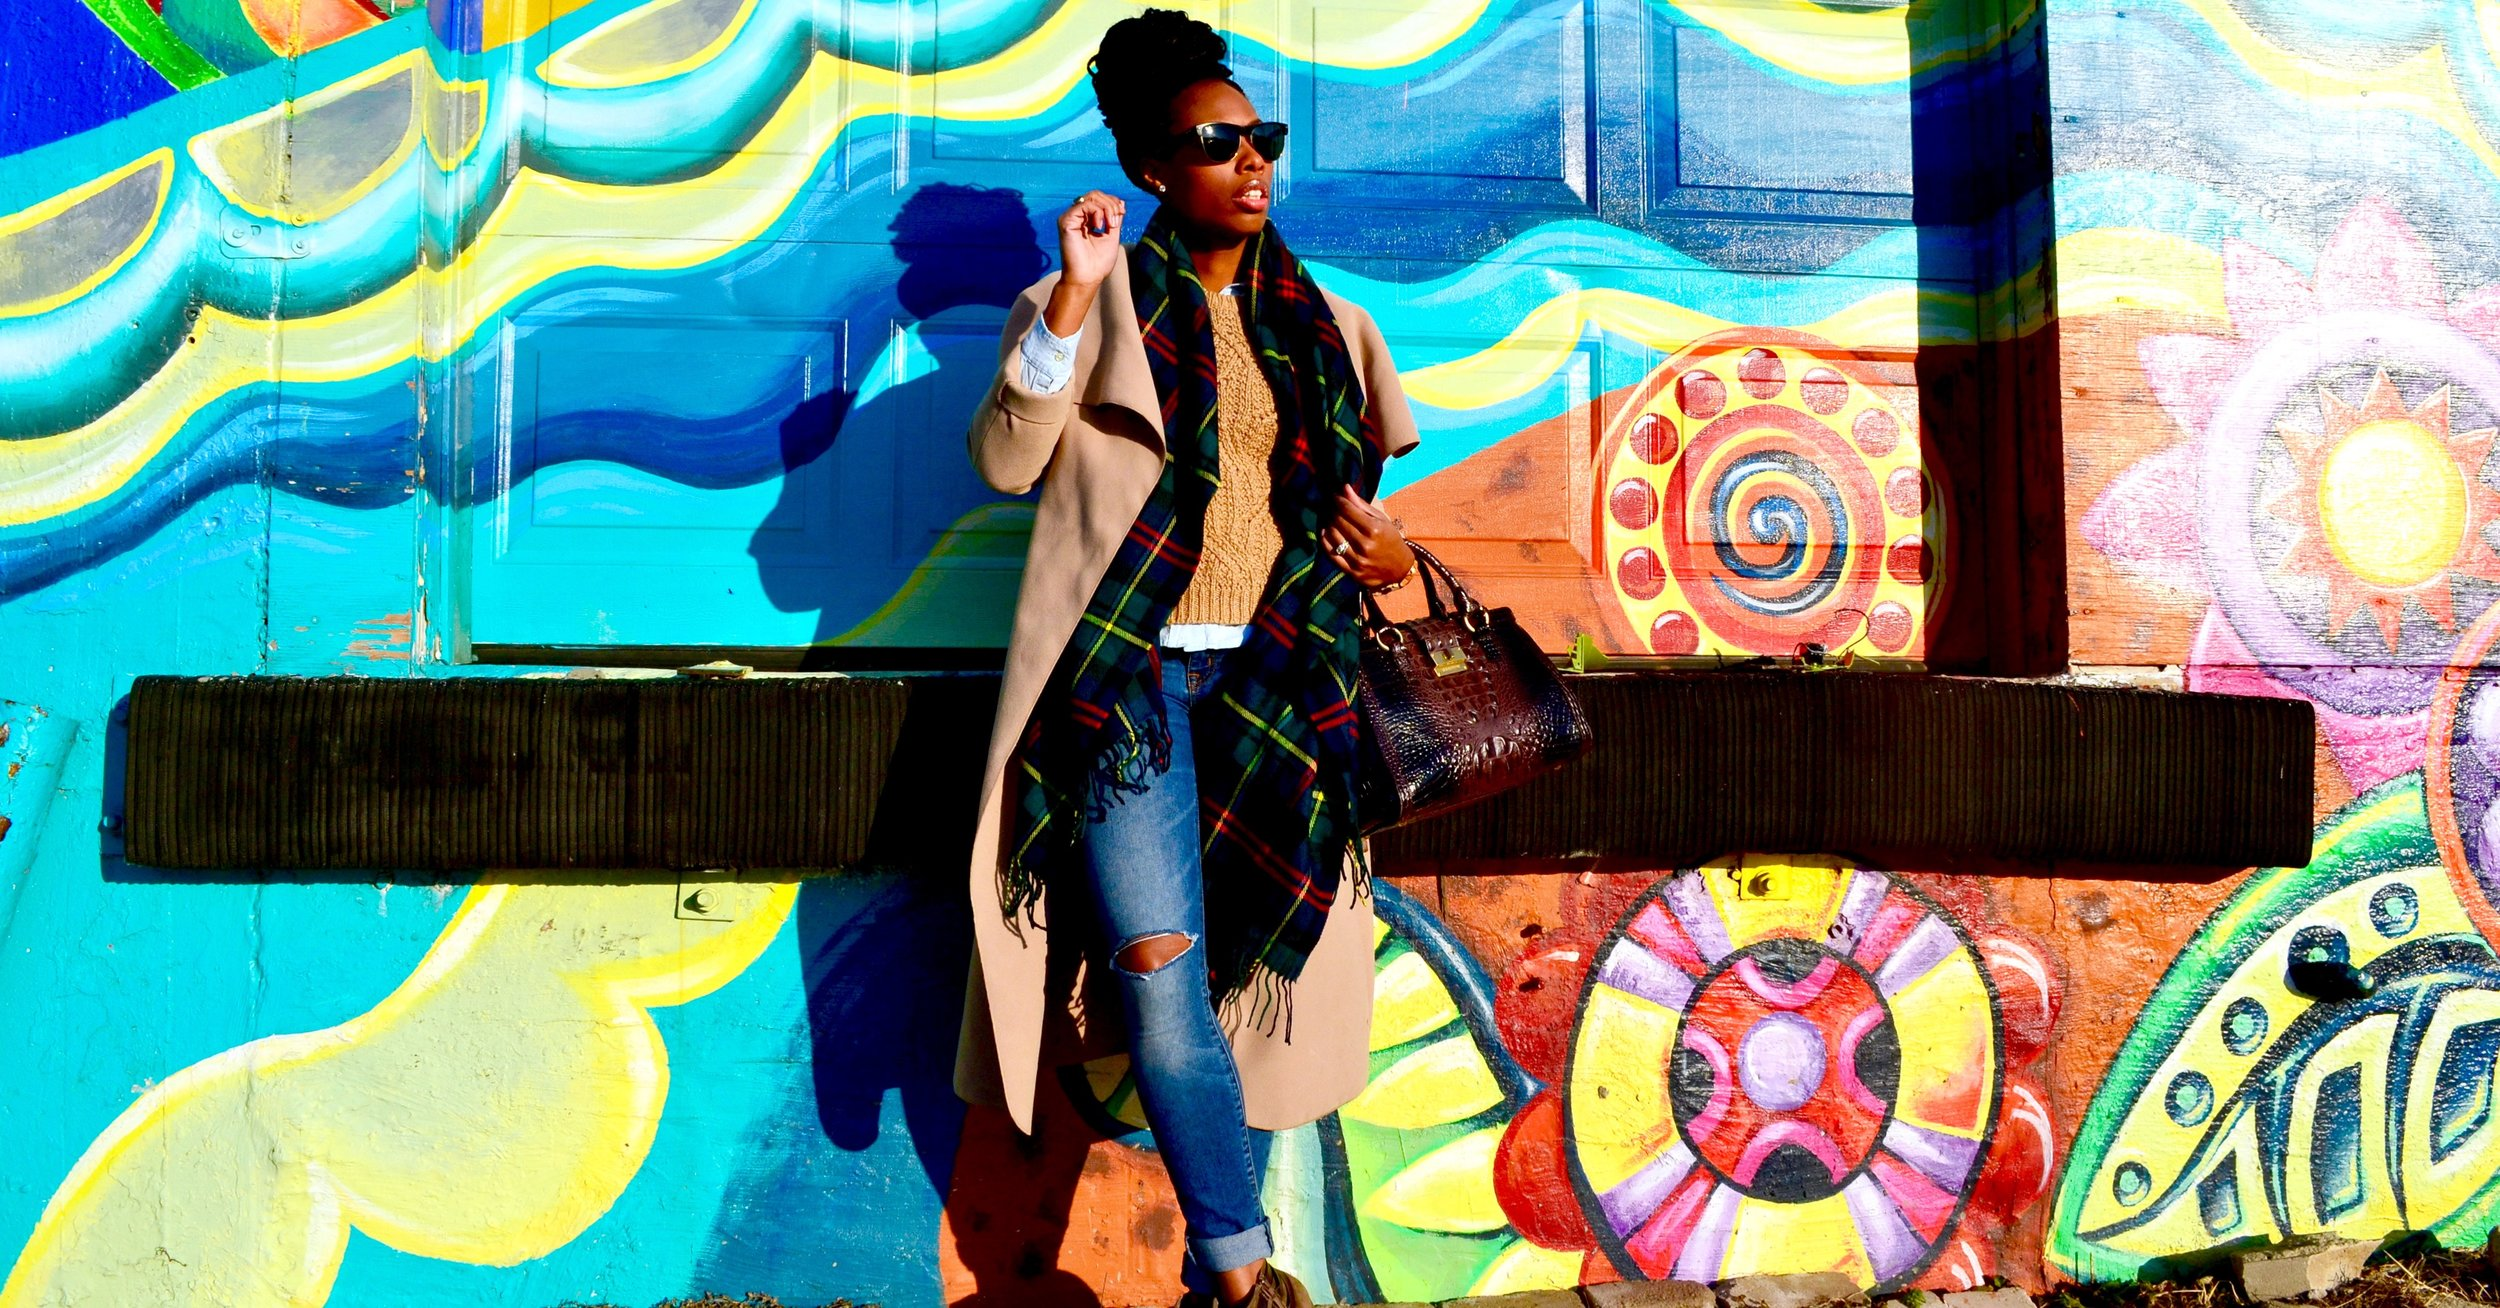 Coat by Fashion Drug, Scarf from Target, Jeans from Rue 21, Boots from Rue 21, Sweater from Old Navy, Button Up from Old Navy